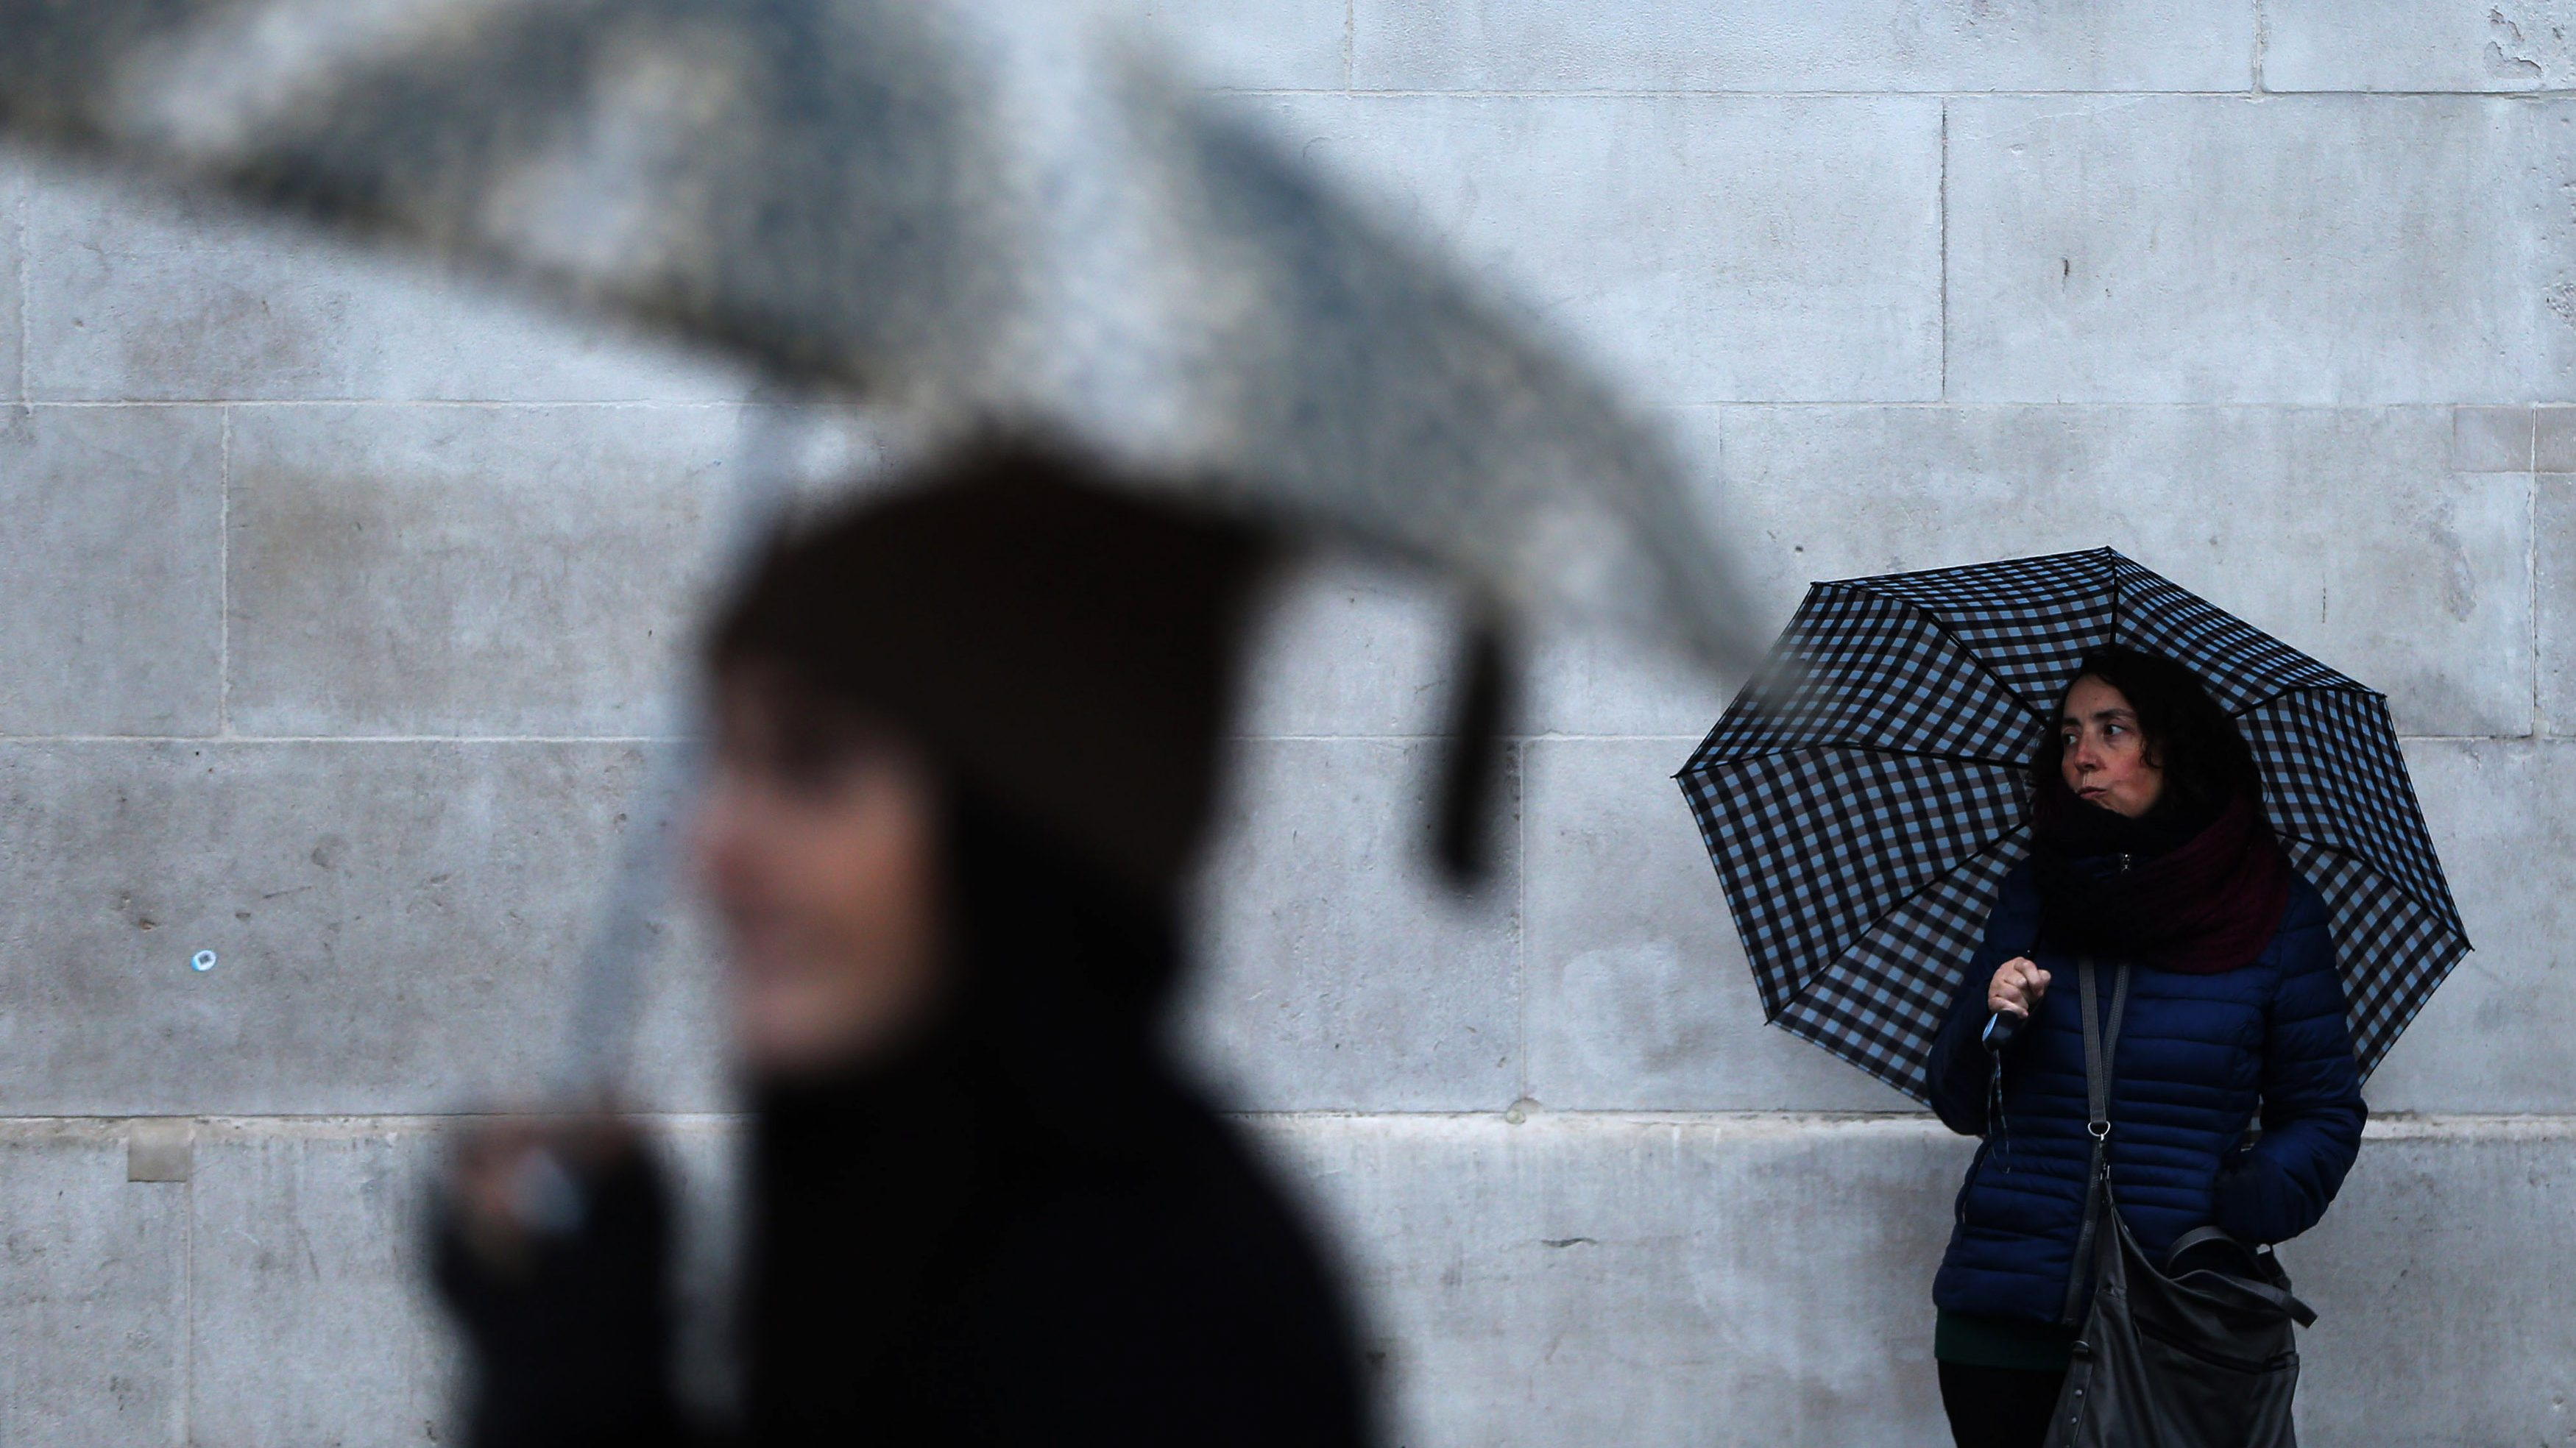 People shelter under umbrellas on a rainy day in central London, Britain